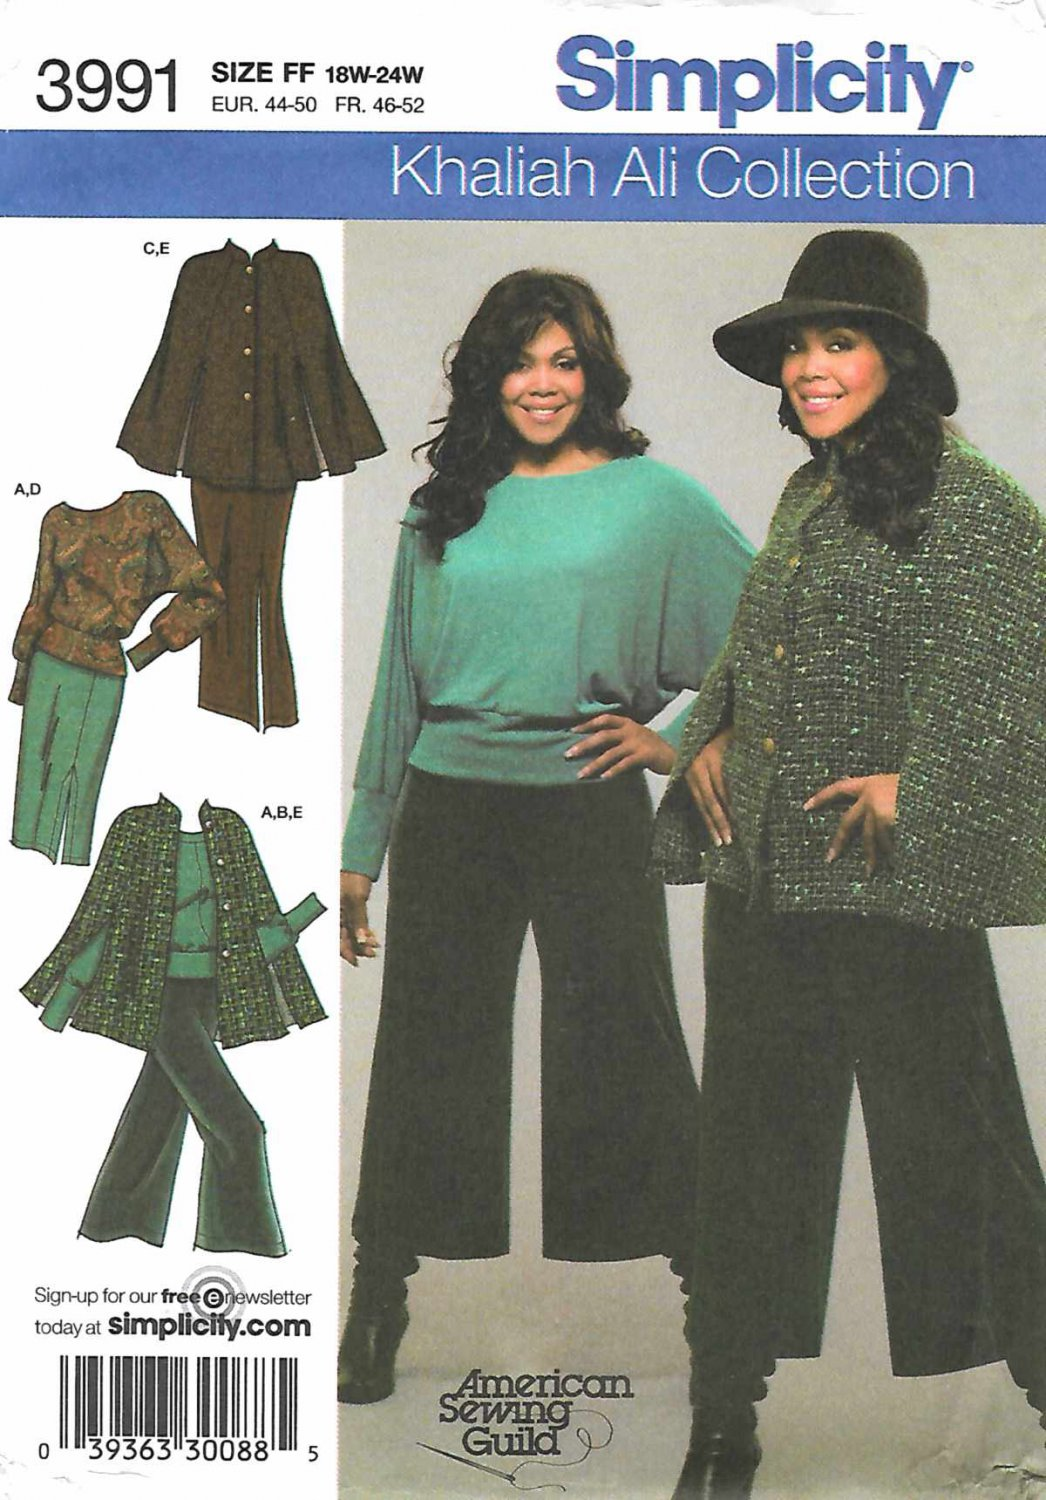 Simplicity Sewing Pattern 3991 Womans Plus Size 18W-20W-22W-24W Gauchos Pants Top Cape Skirt